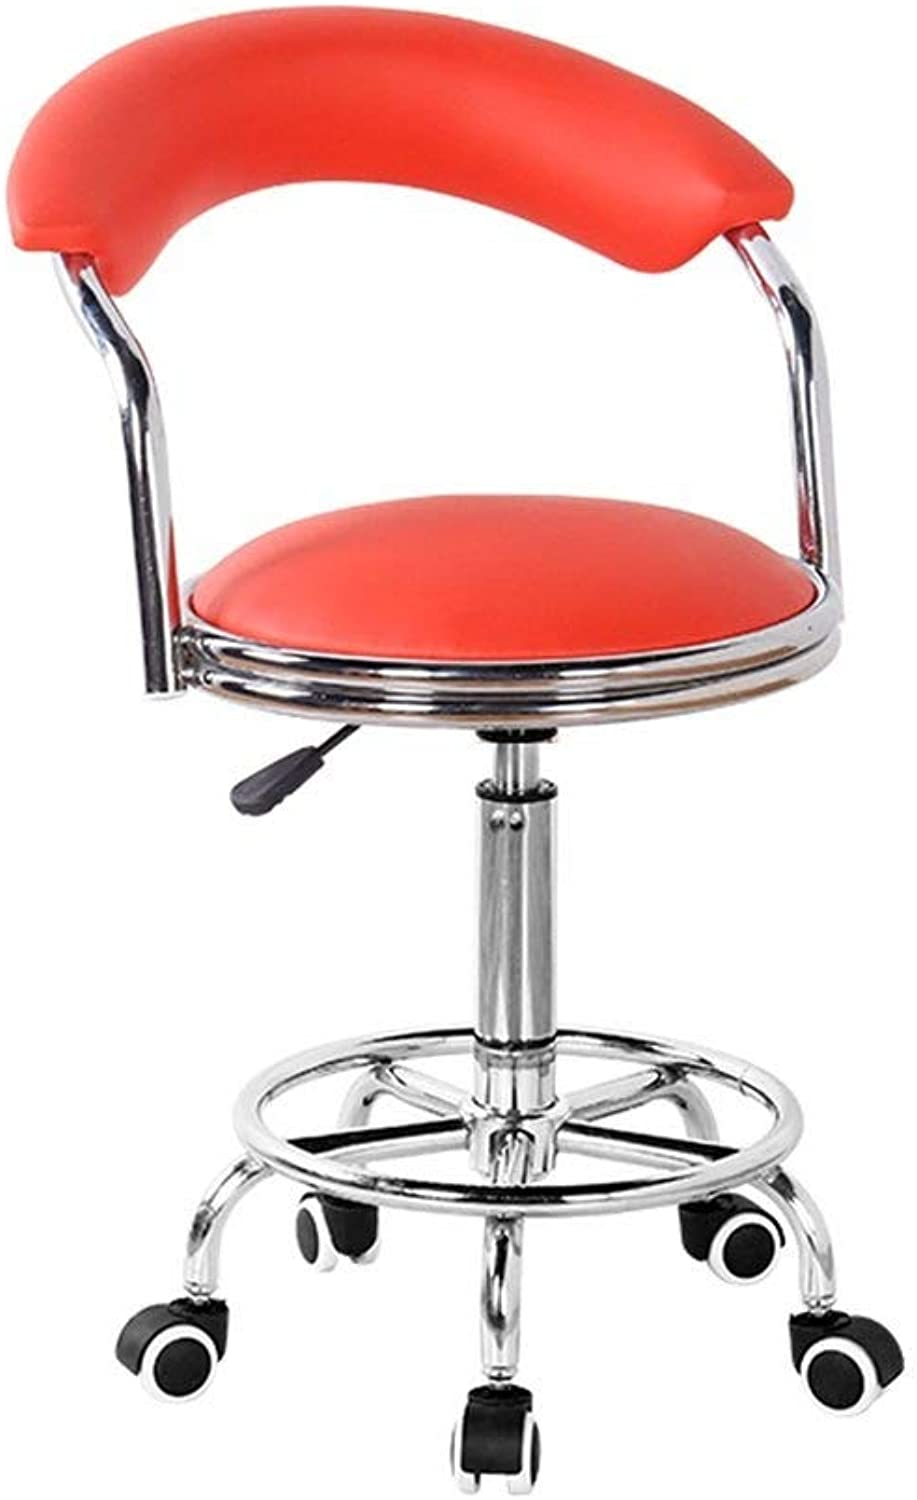 Home Beauty Salon Stool Backrest High Chair redatable Stool Creative Dining Chair GMING (color   orange)